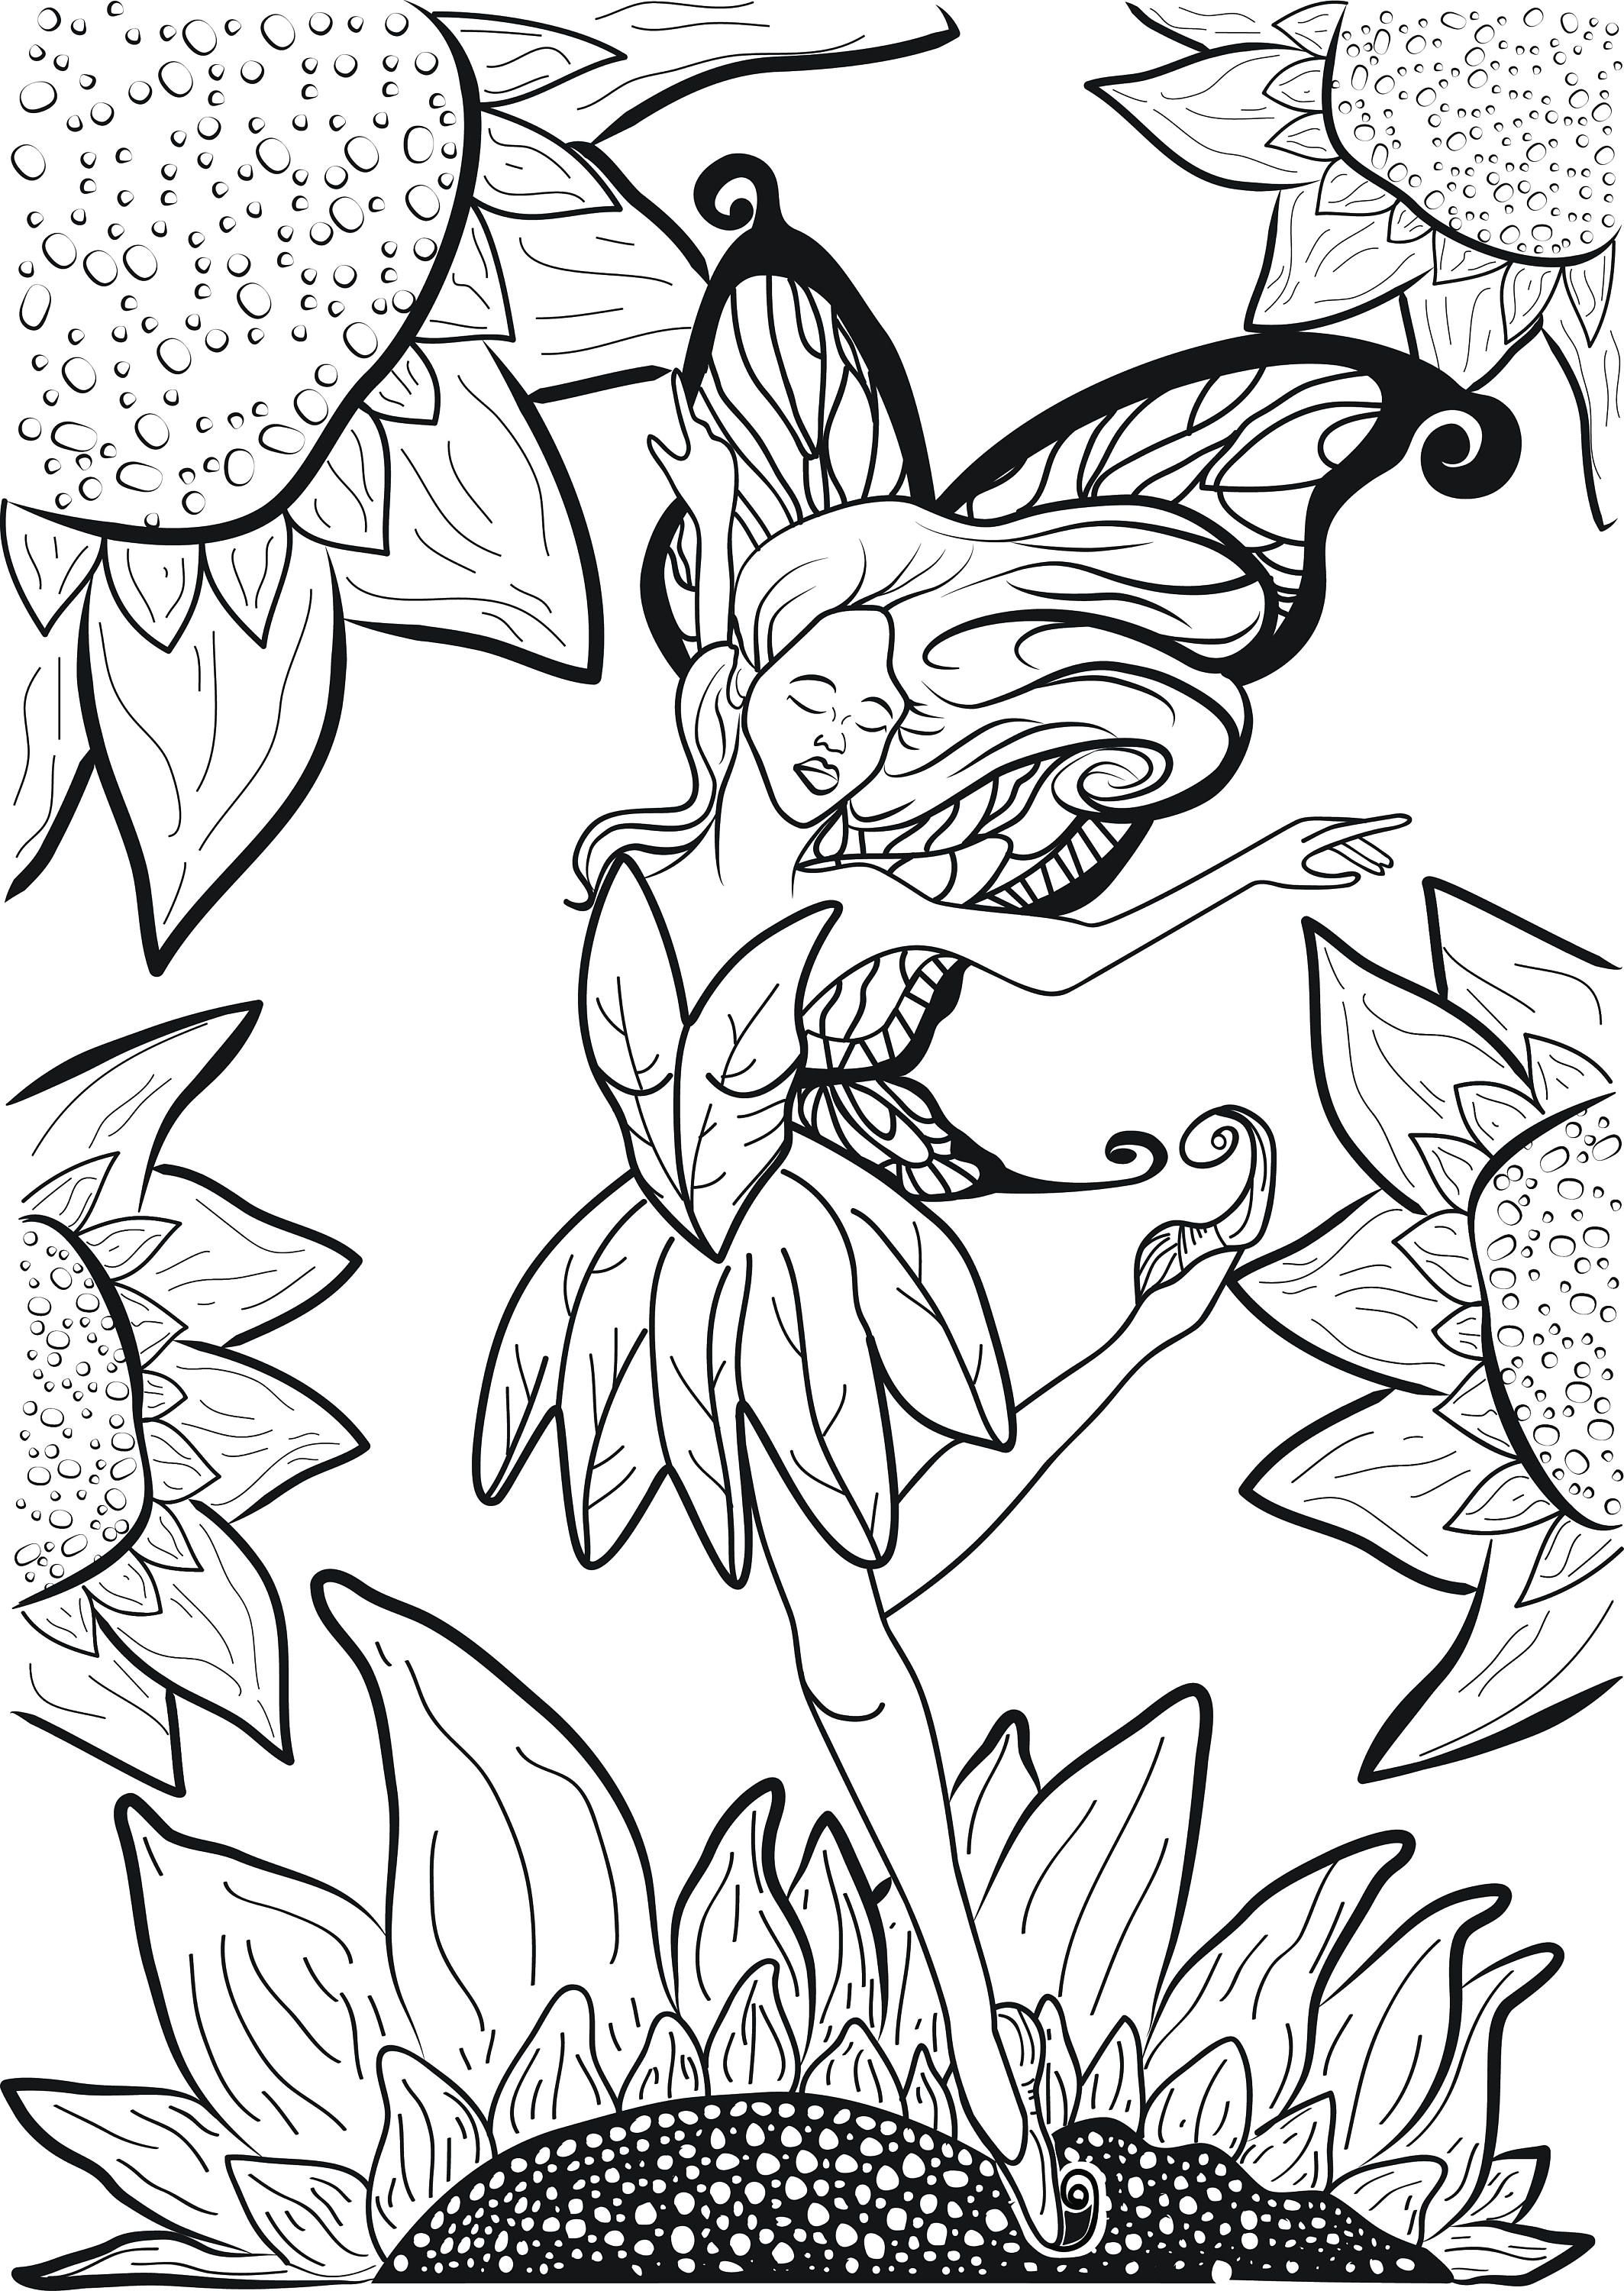 Adult Coloring Page Dancer Balerina Fairy Leaping On